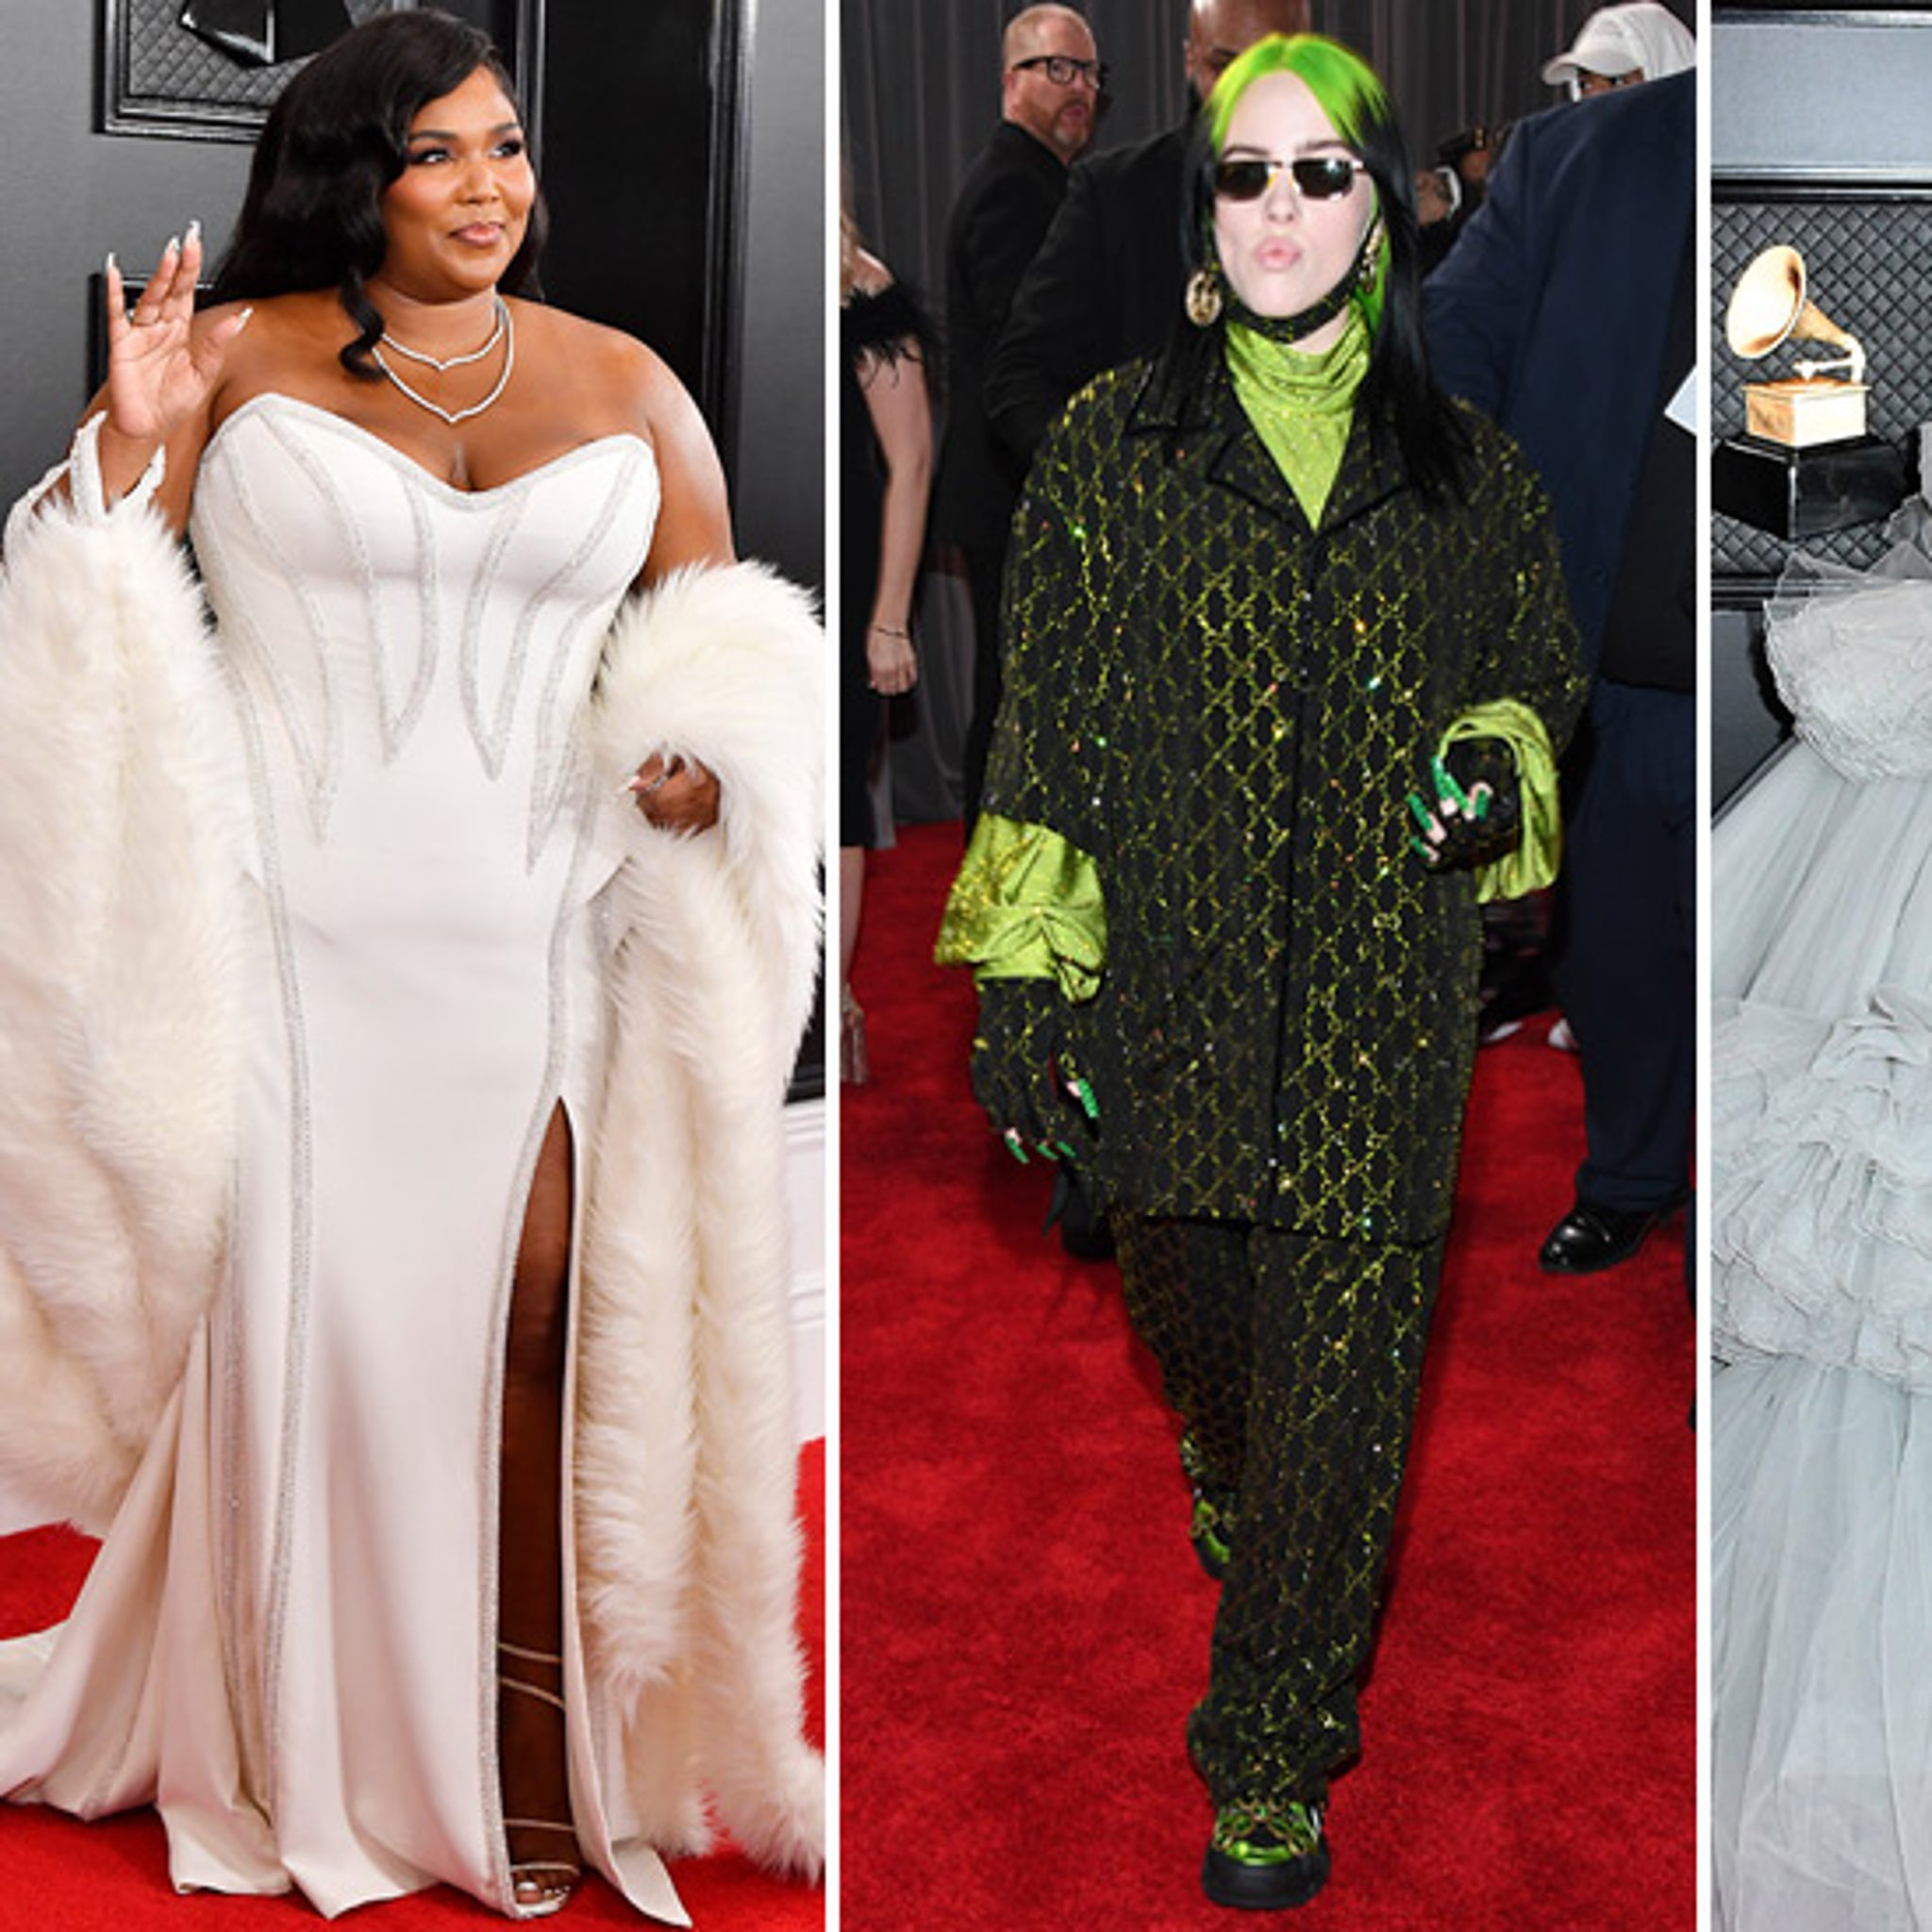 Hollywood Faces the Music Heading Into the Grammys, Styles Galore